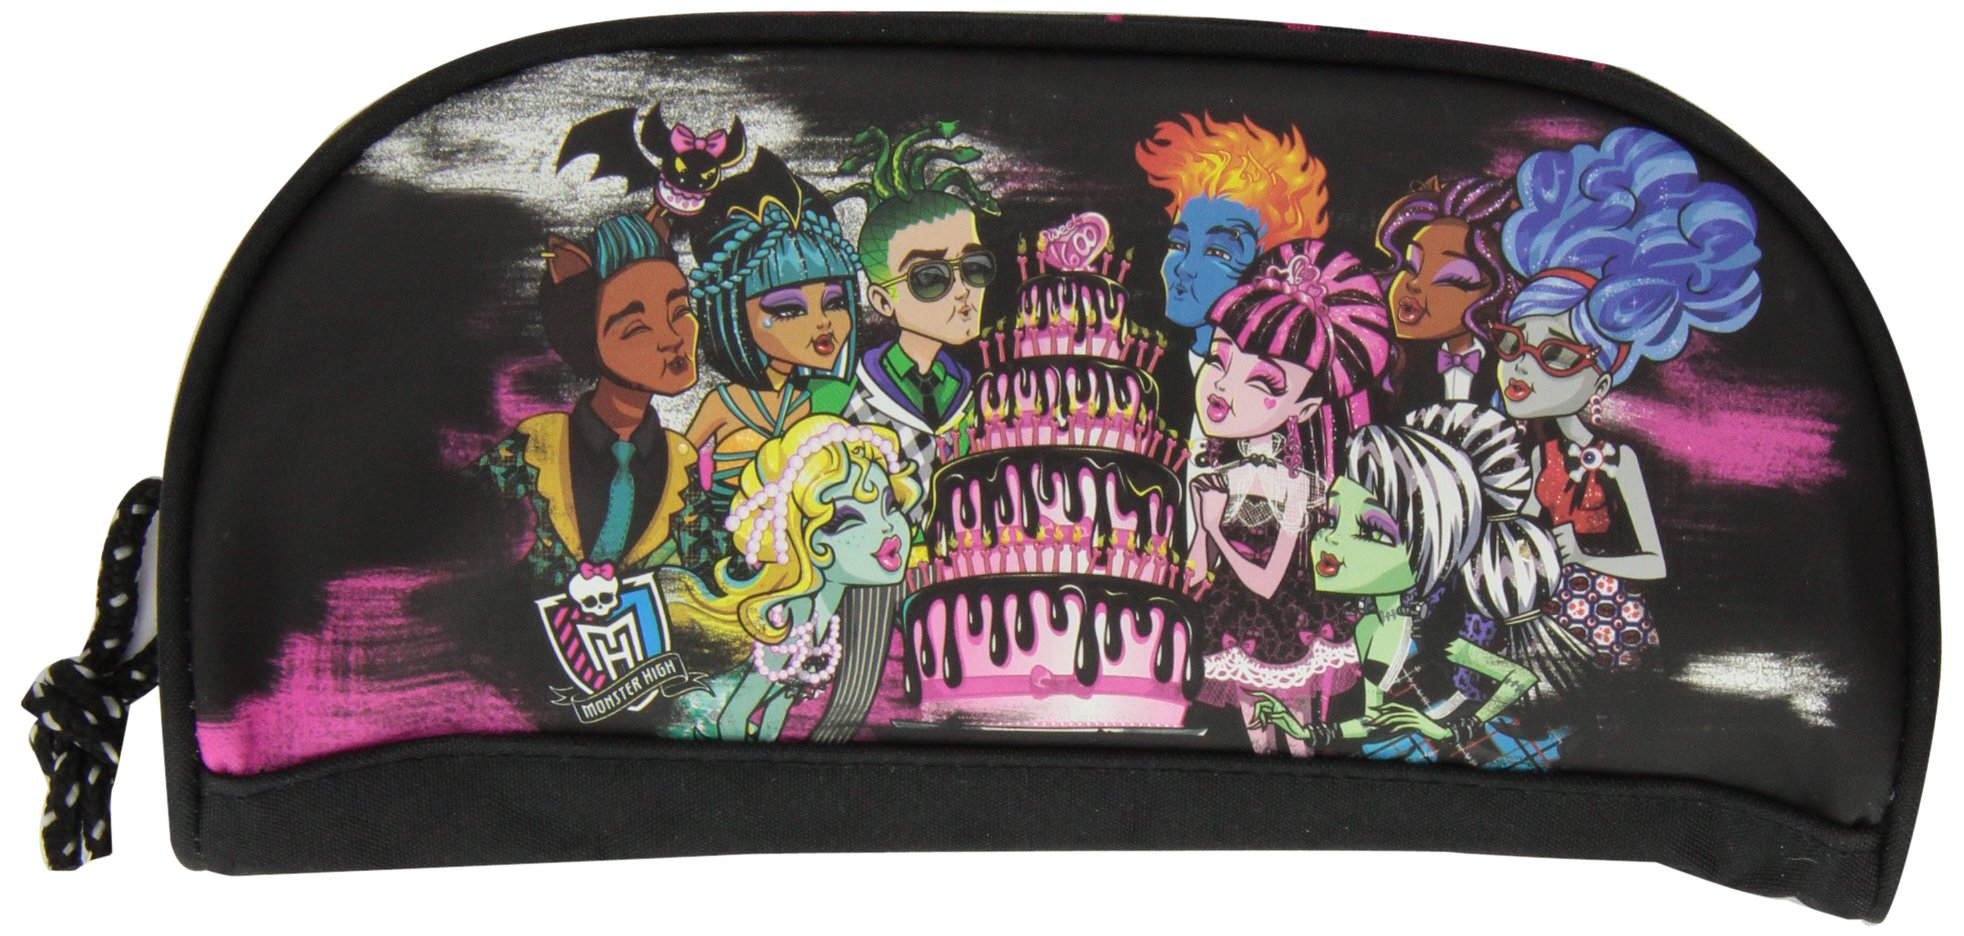 Monster High SAFTA – Portatodo Ovalado 23X9X5 76-1243283